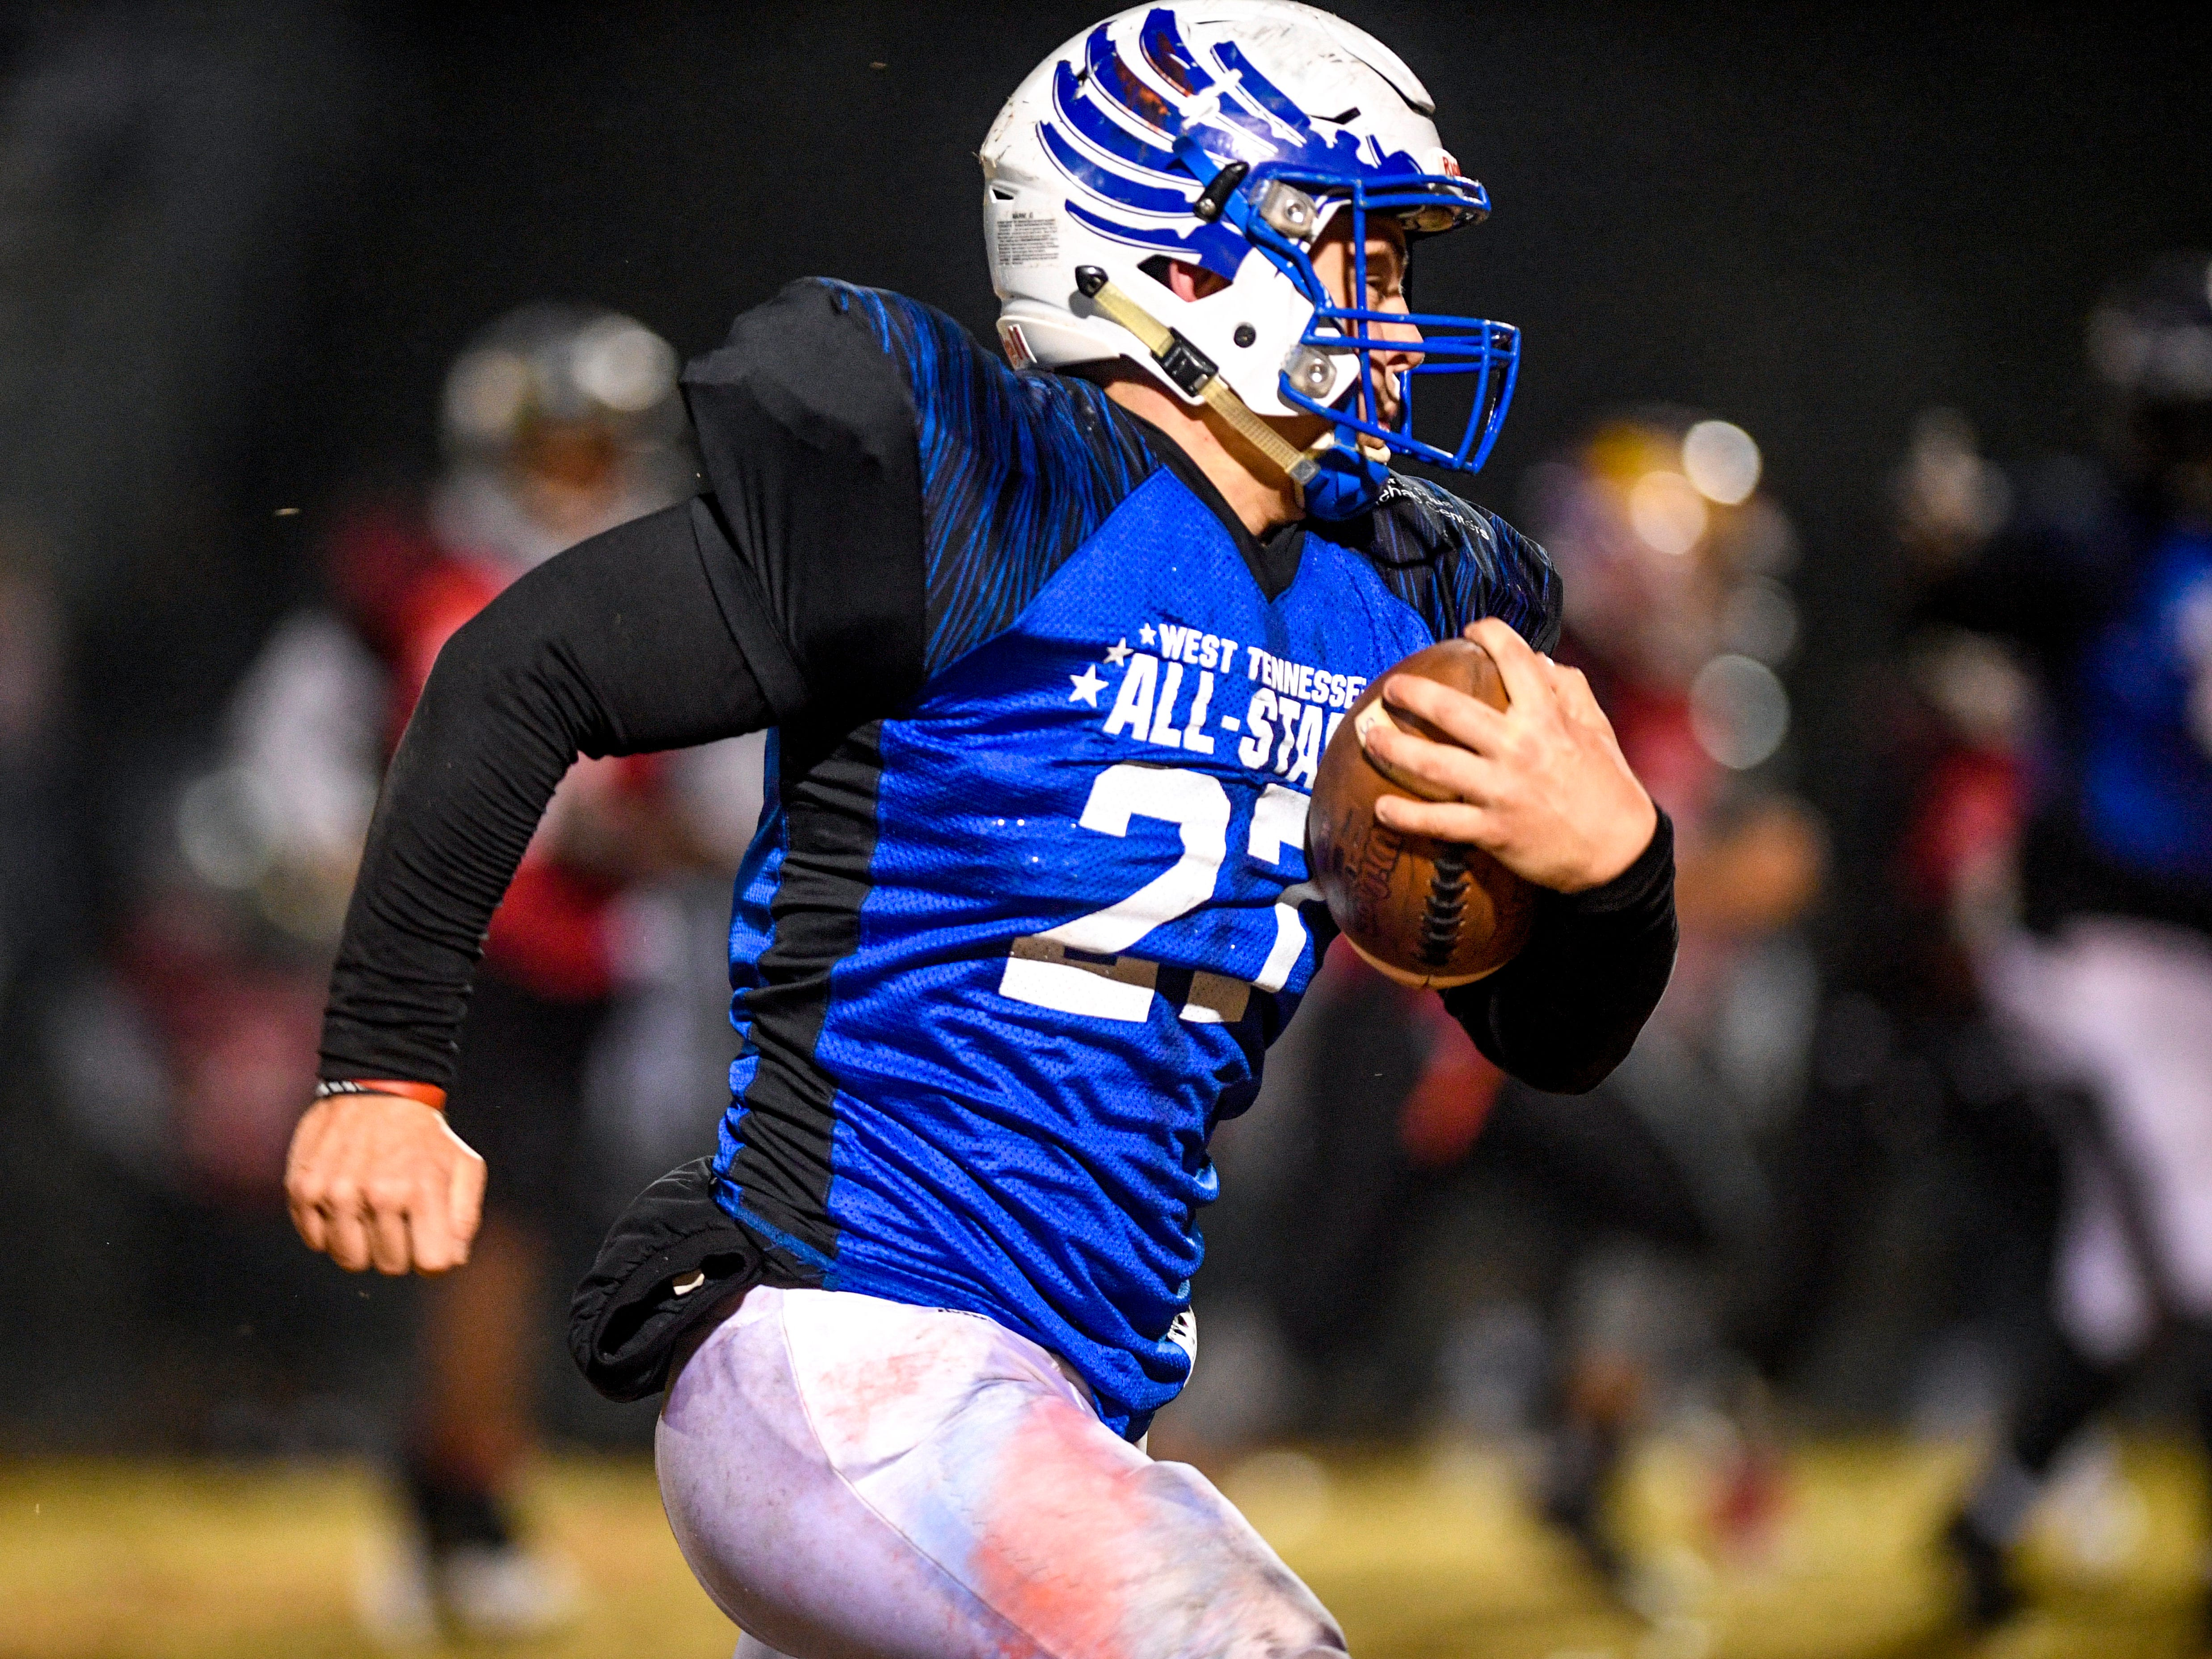 Chester Co's Peyton Doles (27) runs down the field after intercepting a pass, that he would take for a touchdown during the West Tennessee All-Star football game at University School of Jackson in Jackson, Tenn., on Friday, Dec. 7, 2018.